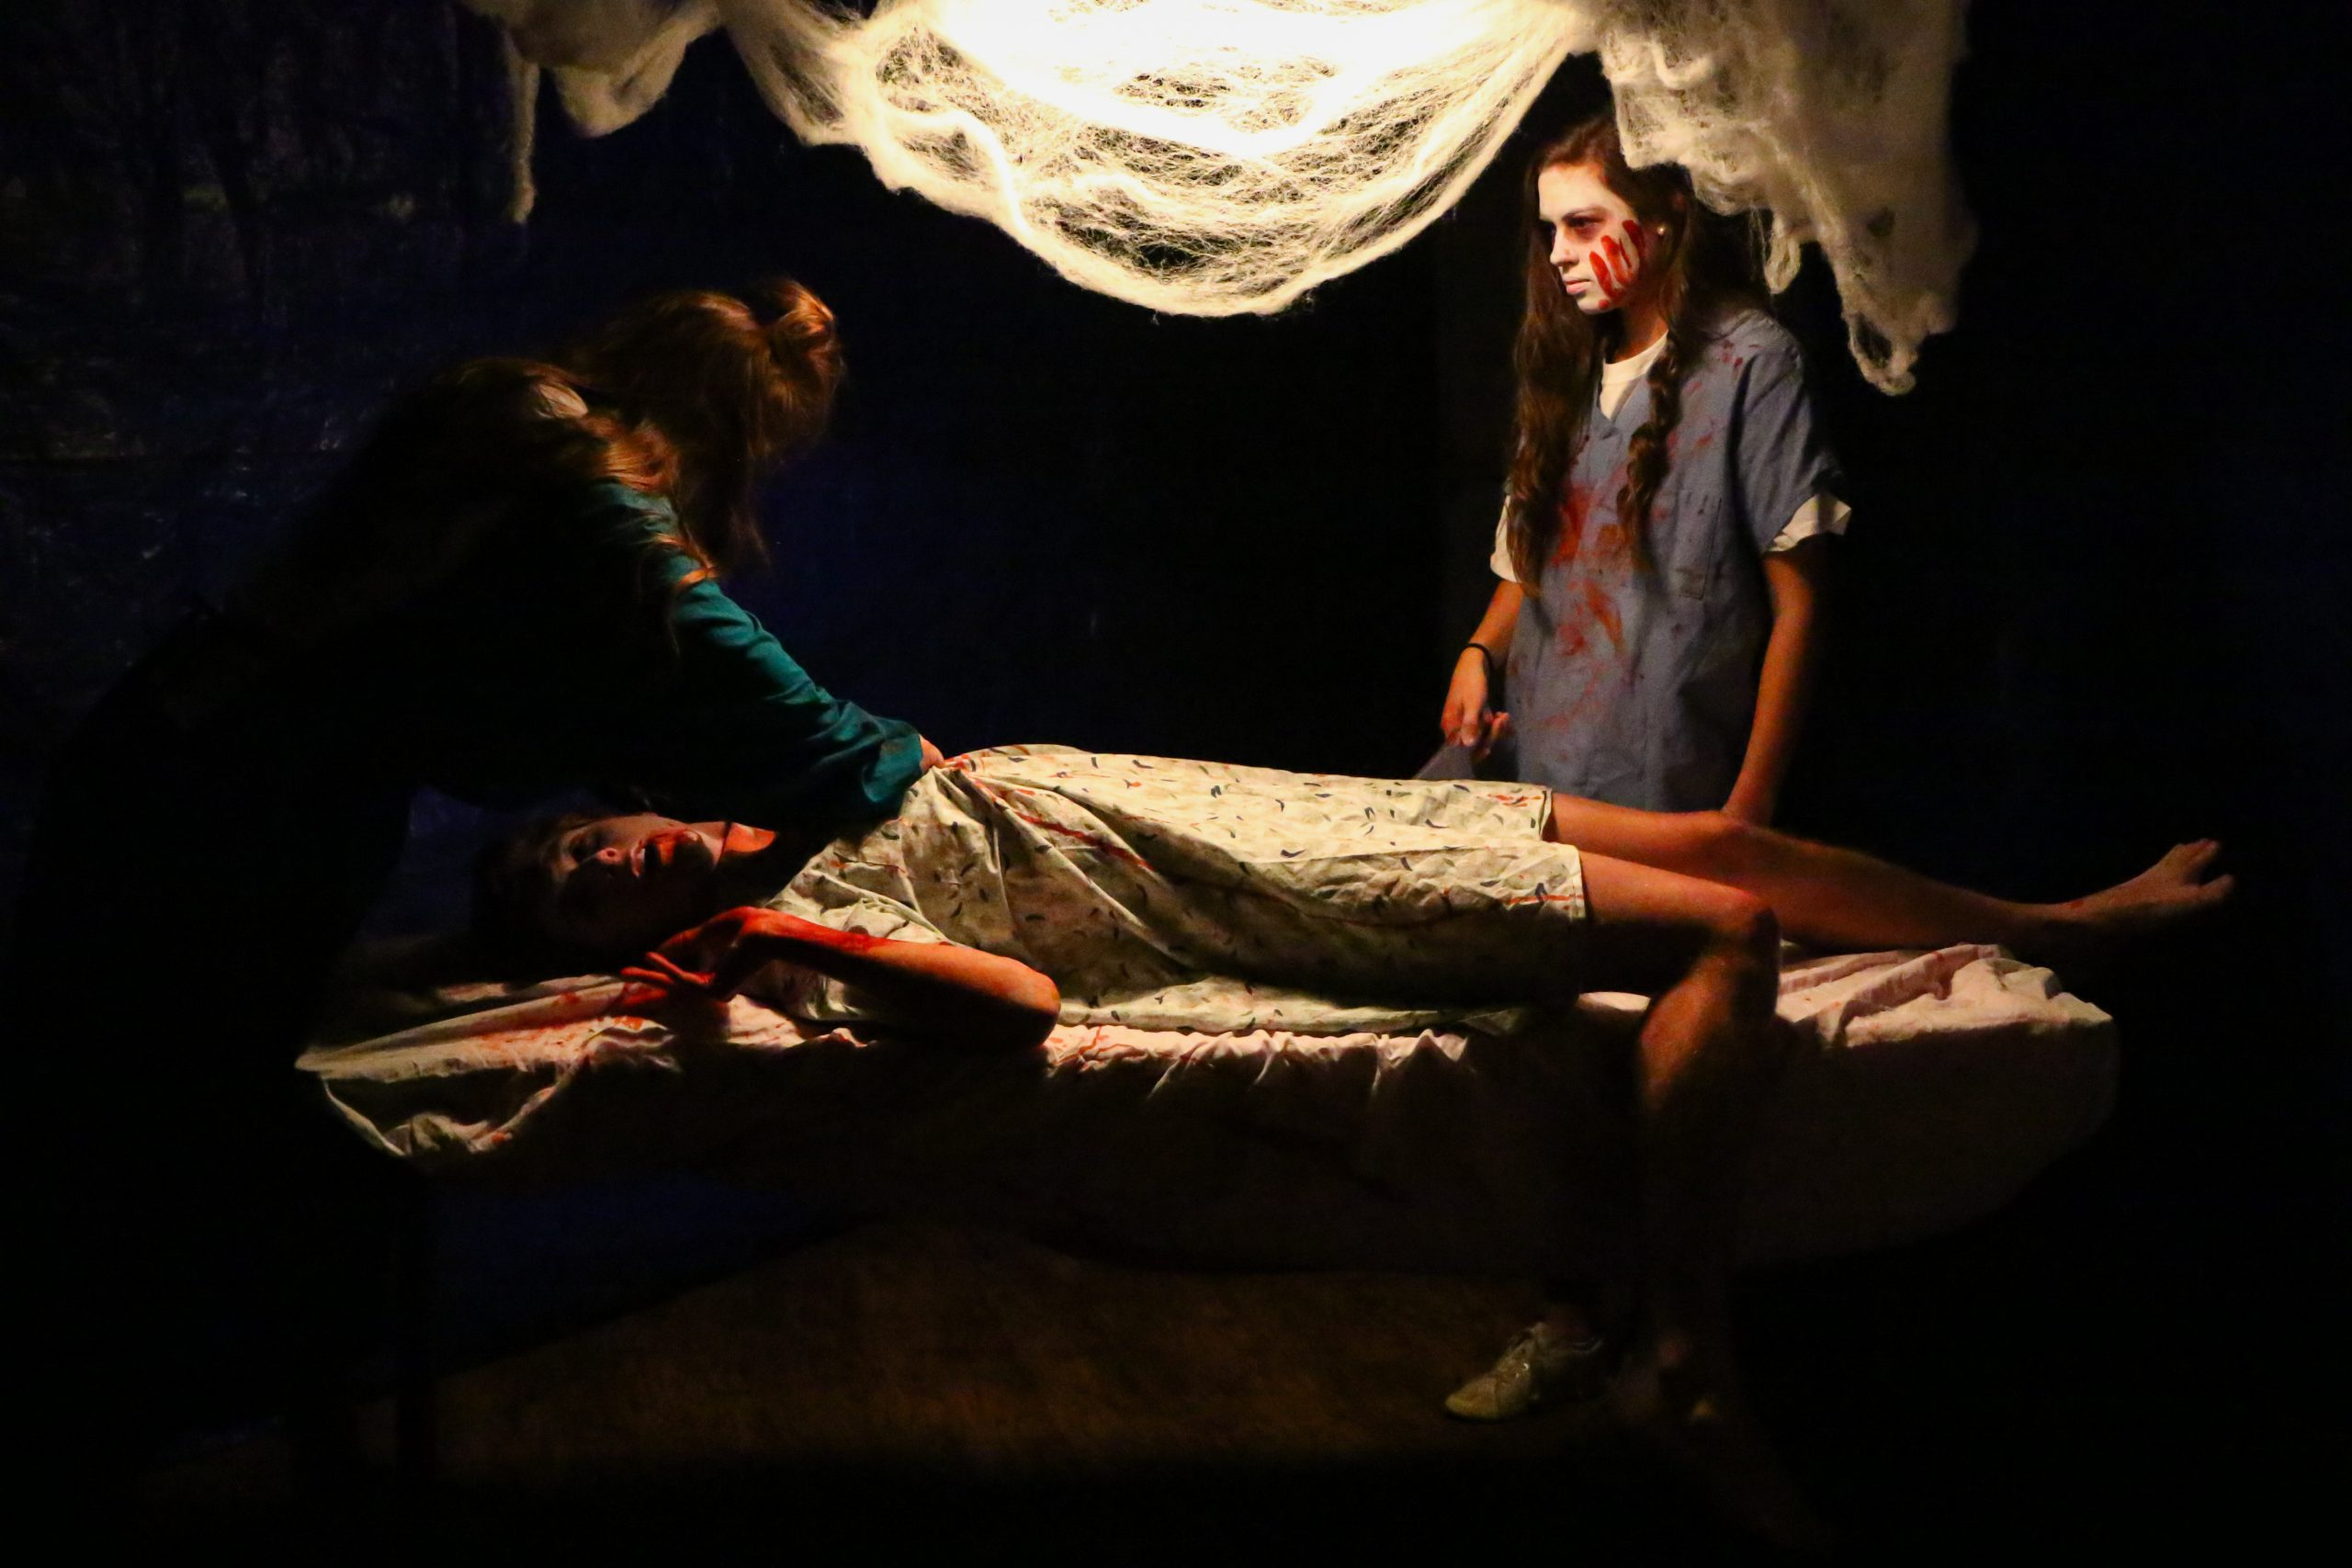 CSU Theta Chi's haunted house spooks visitors with